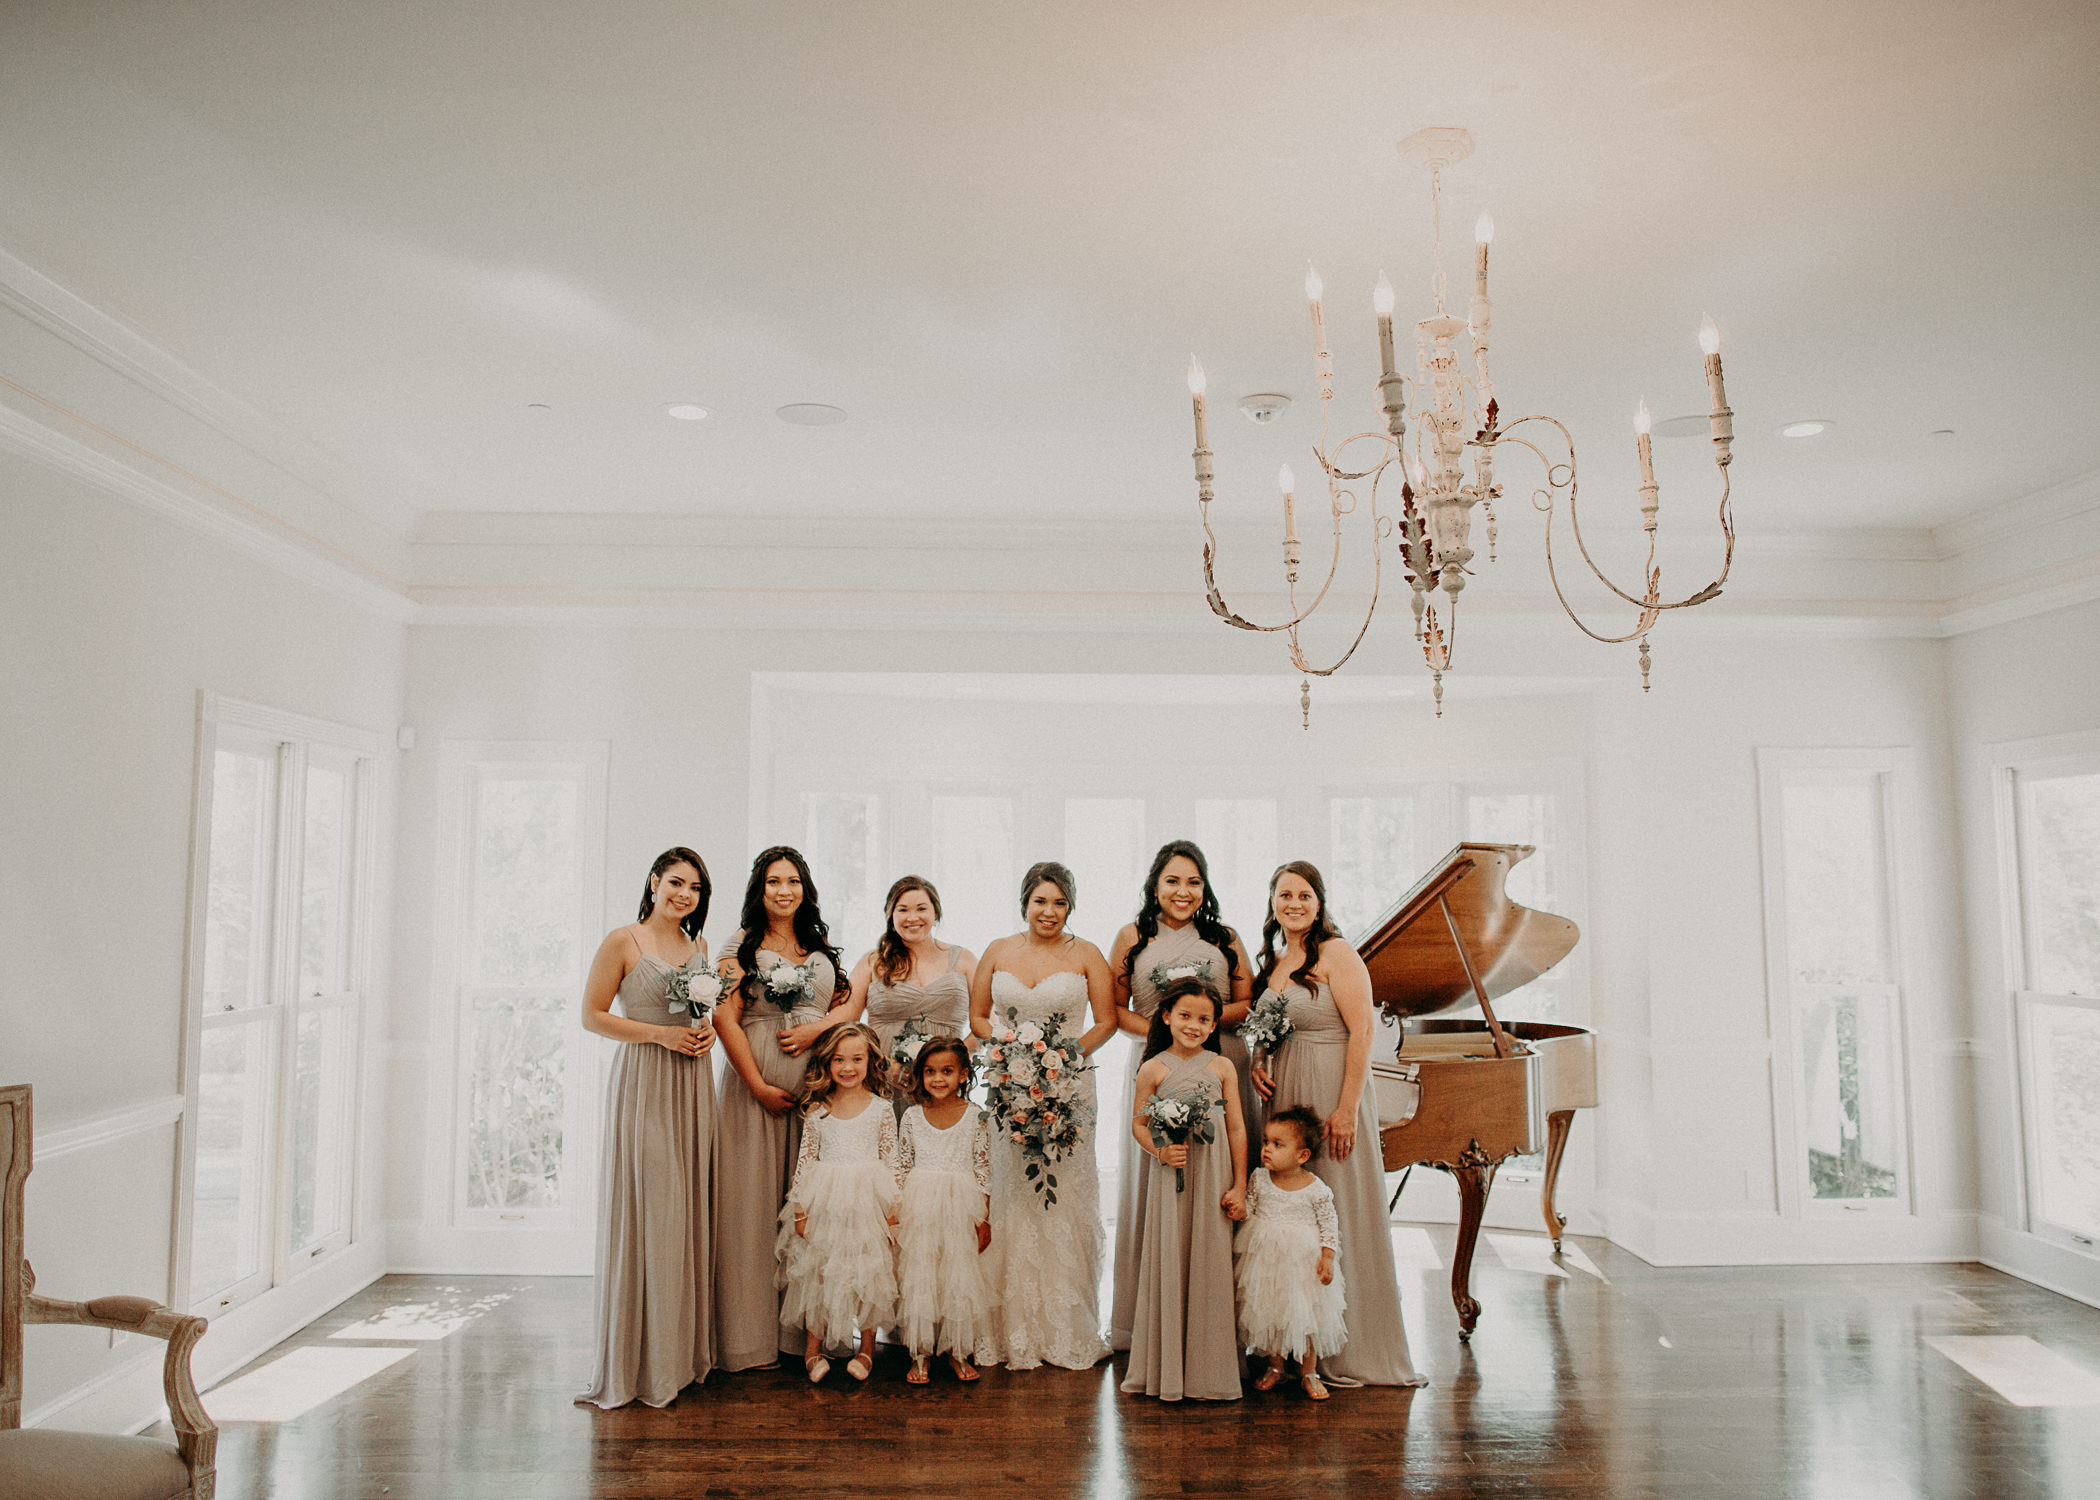 18  - Little River Farms - first look - Atlanta - Wedding Venue - Atlanta Wedding Photographer - Georgia weddings details wedding dress shoes gather groom bridal party .jpg